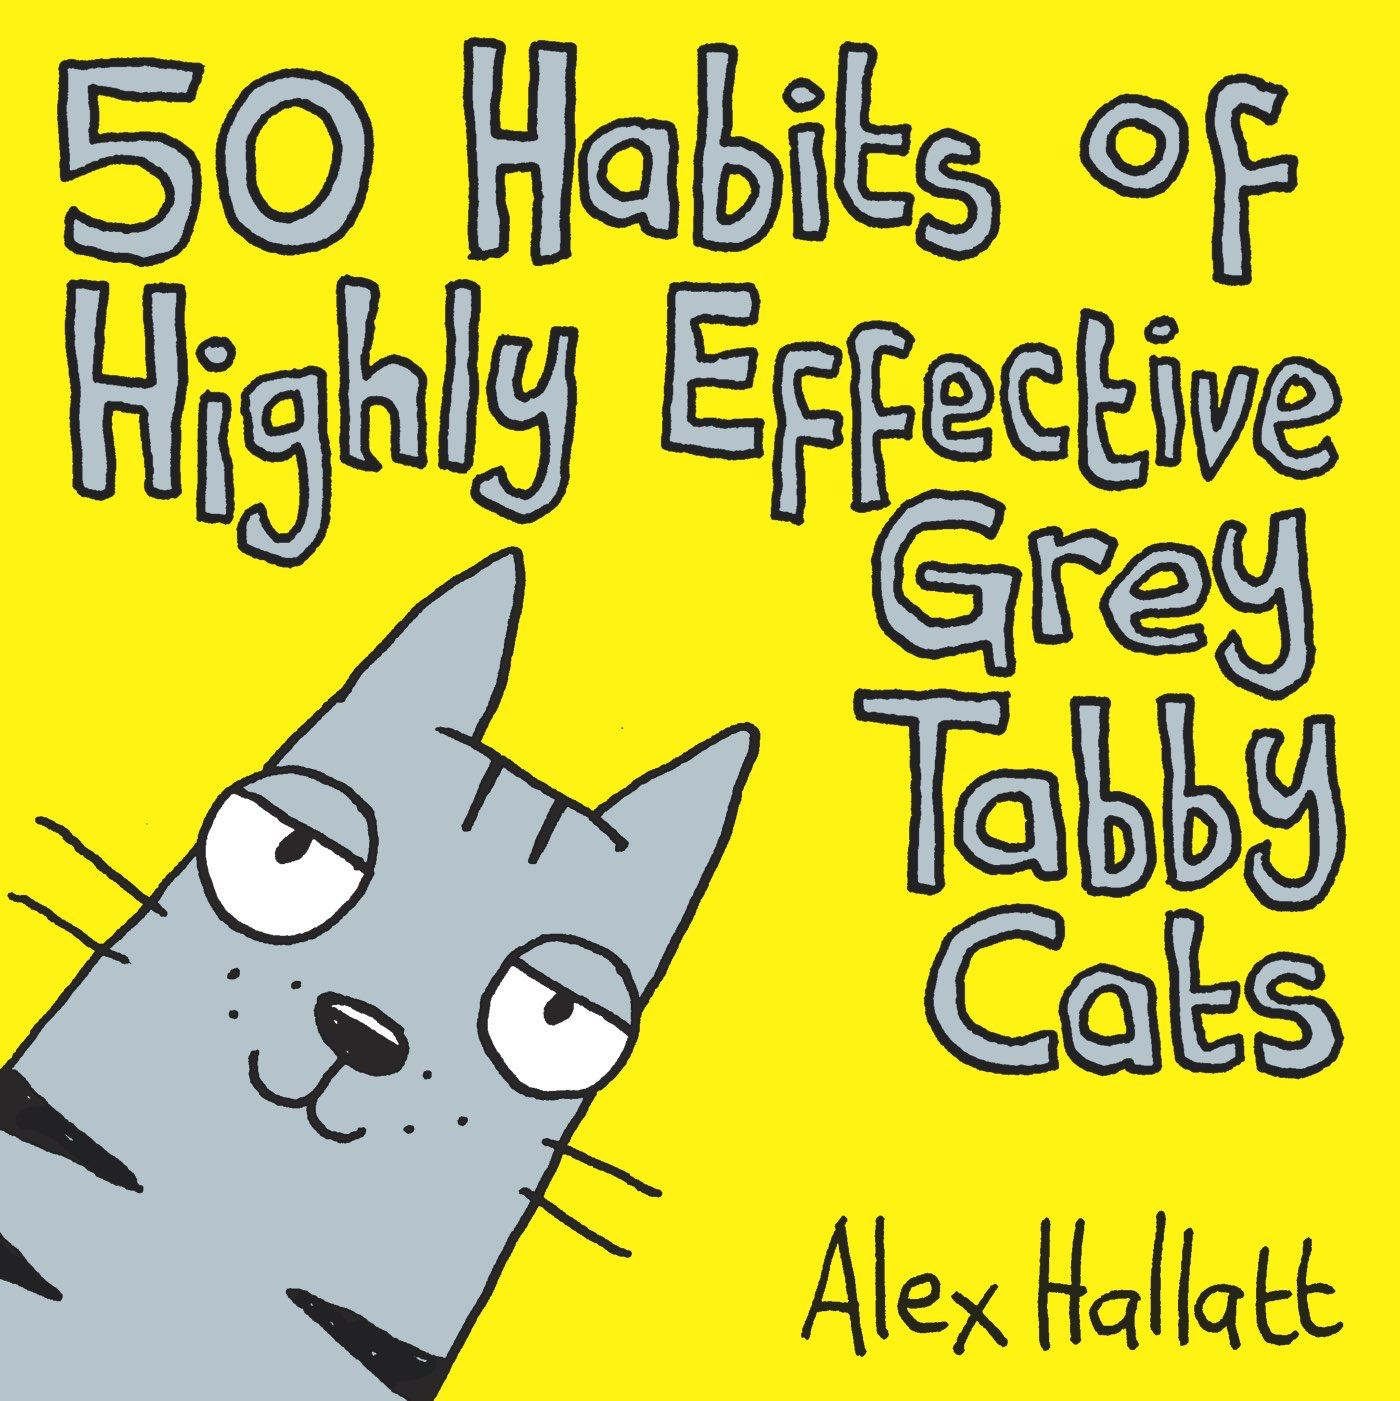 50 Habits of Highly Effective Grey Tabby Cats book cover